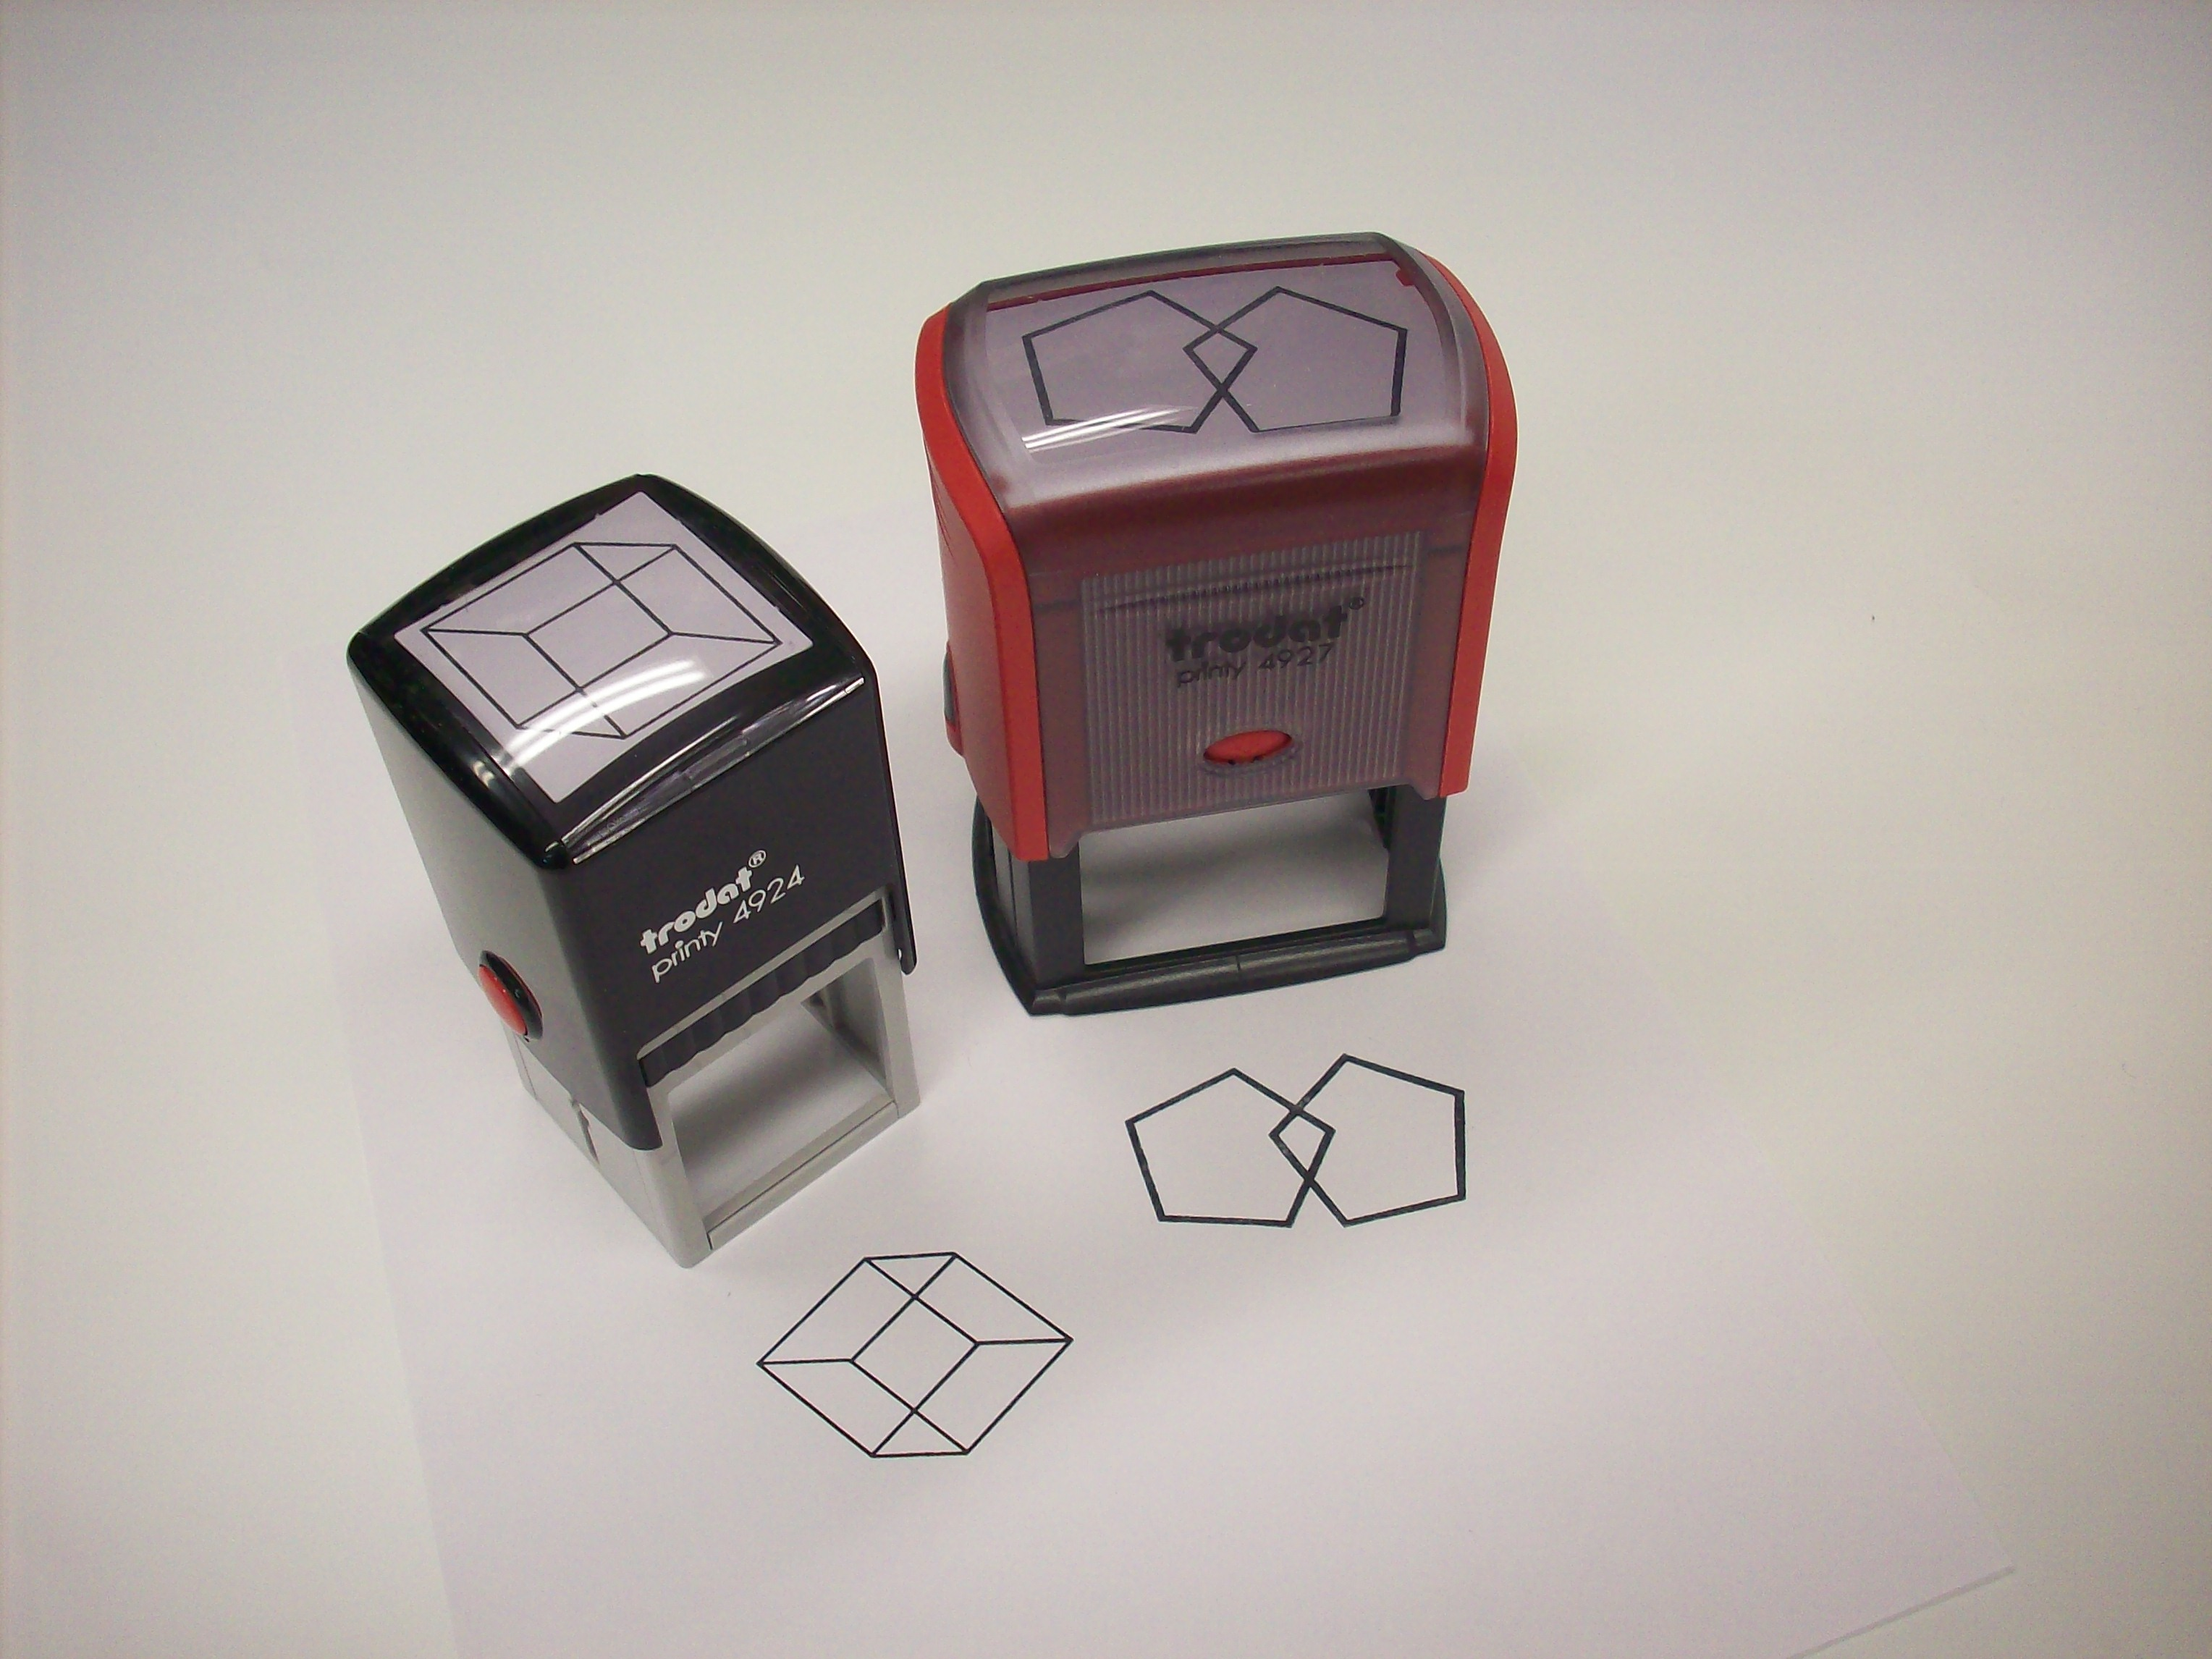 Rubber Stamp for Cognitive Testing Pentagons